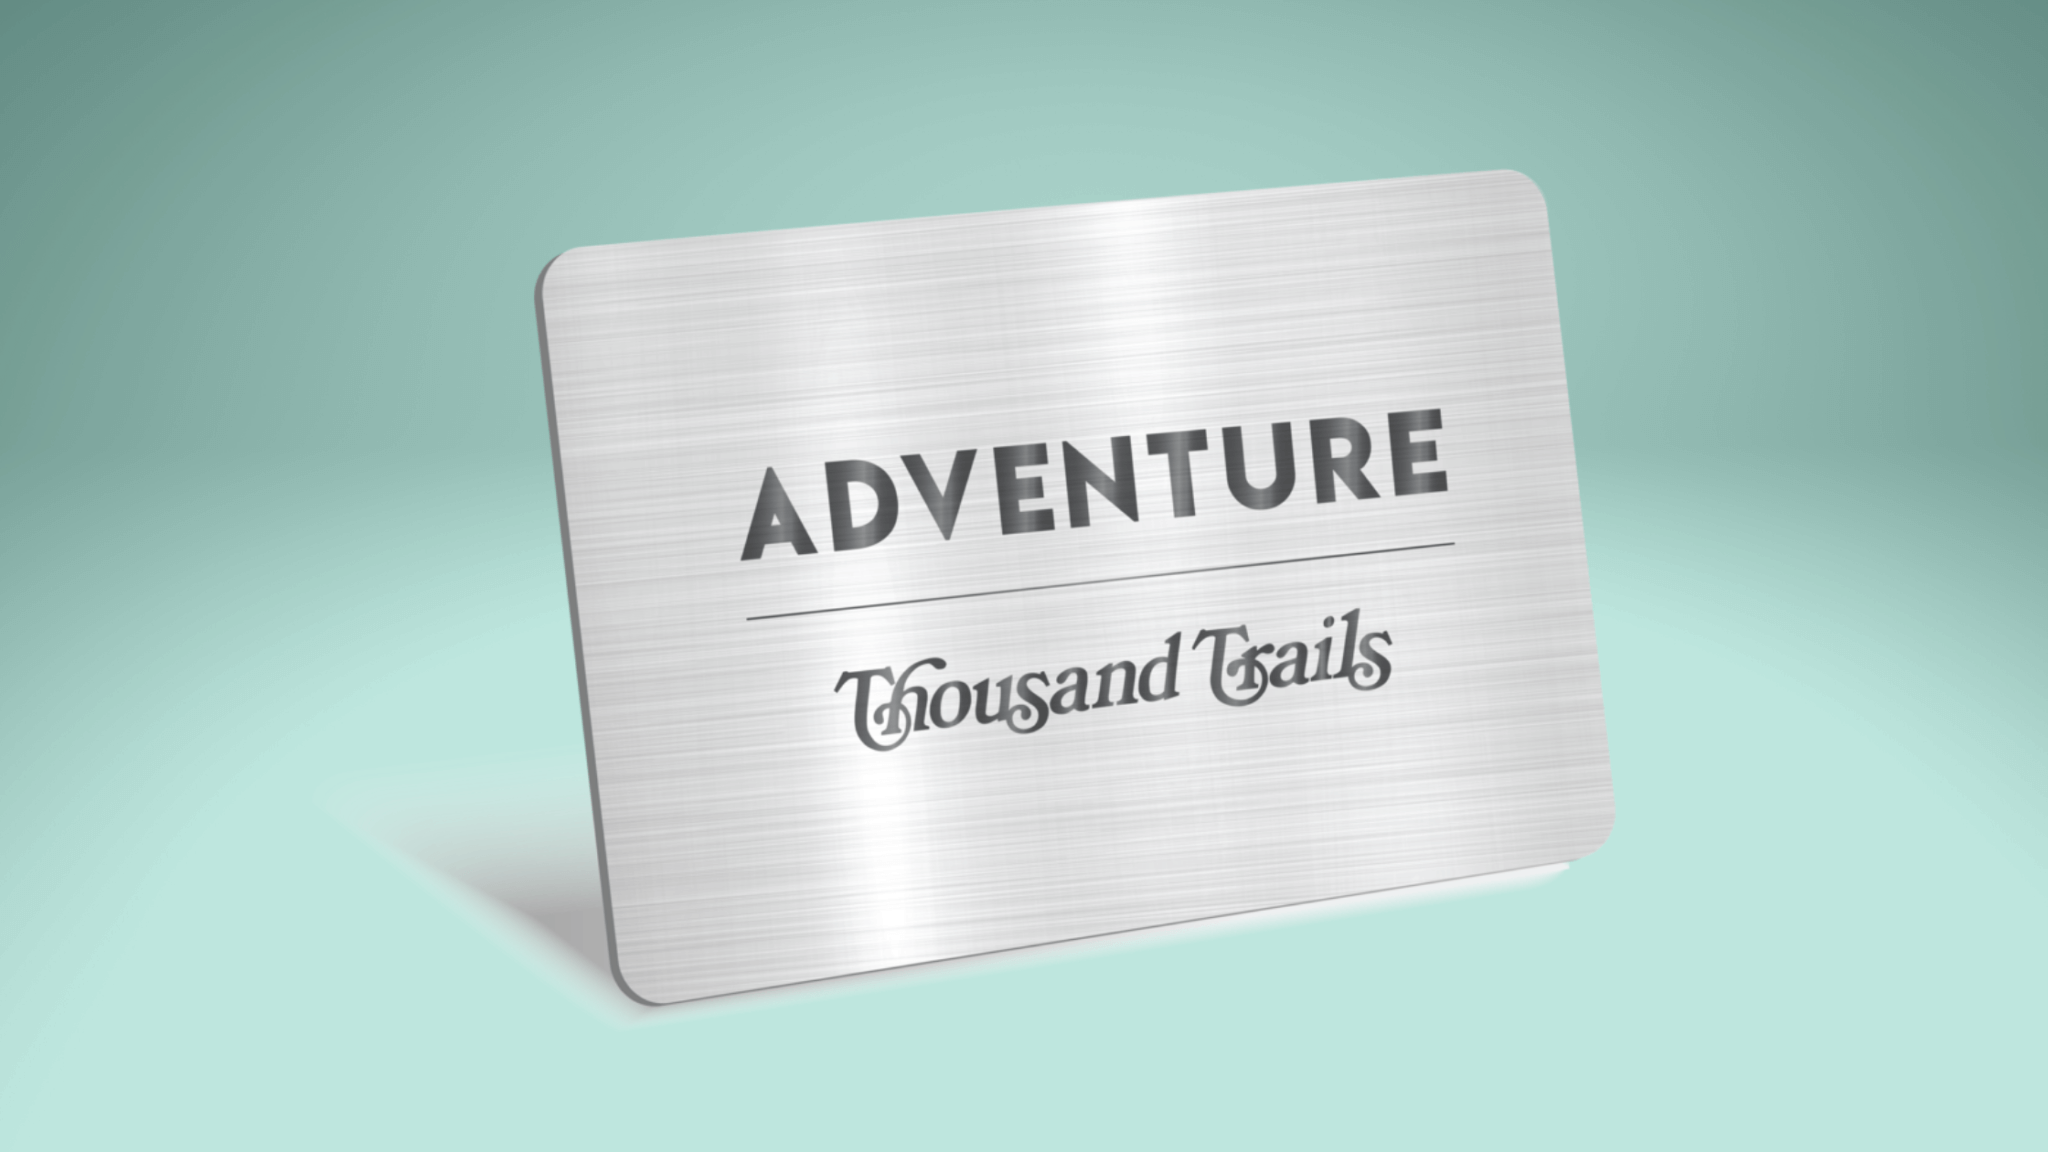 Everything You Need to Know About the New Thousand Trails Adventure Membership